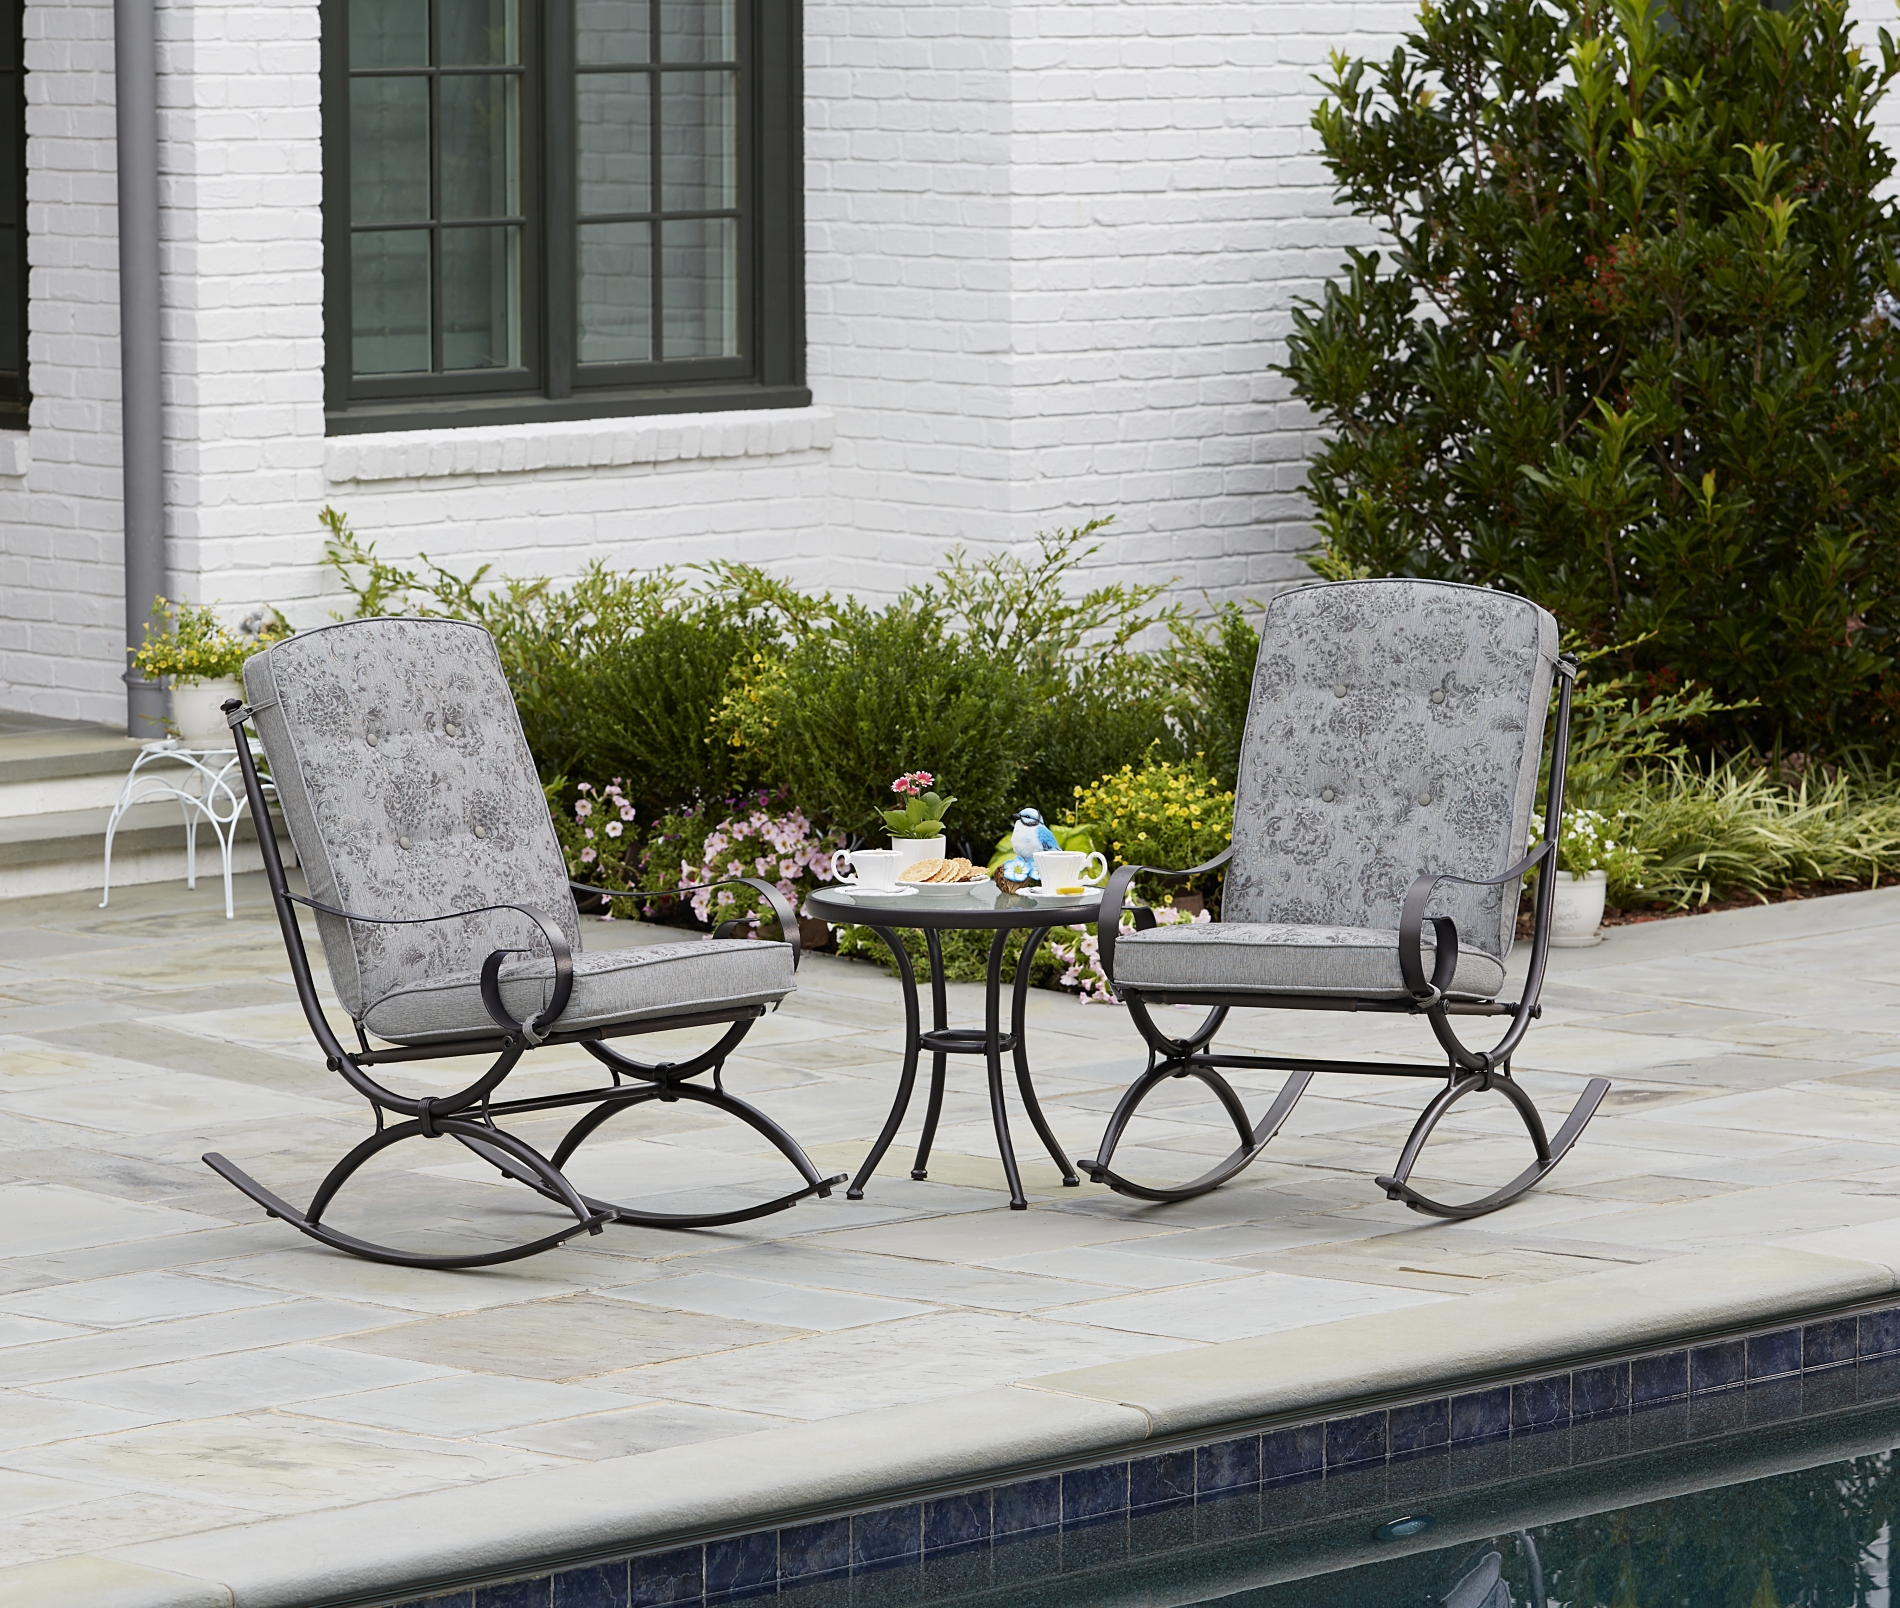 Bistro Sets jaclyn smith centralia 3-piece rocking patio bistro set - gray reversible  cushion WWCQBQR